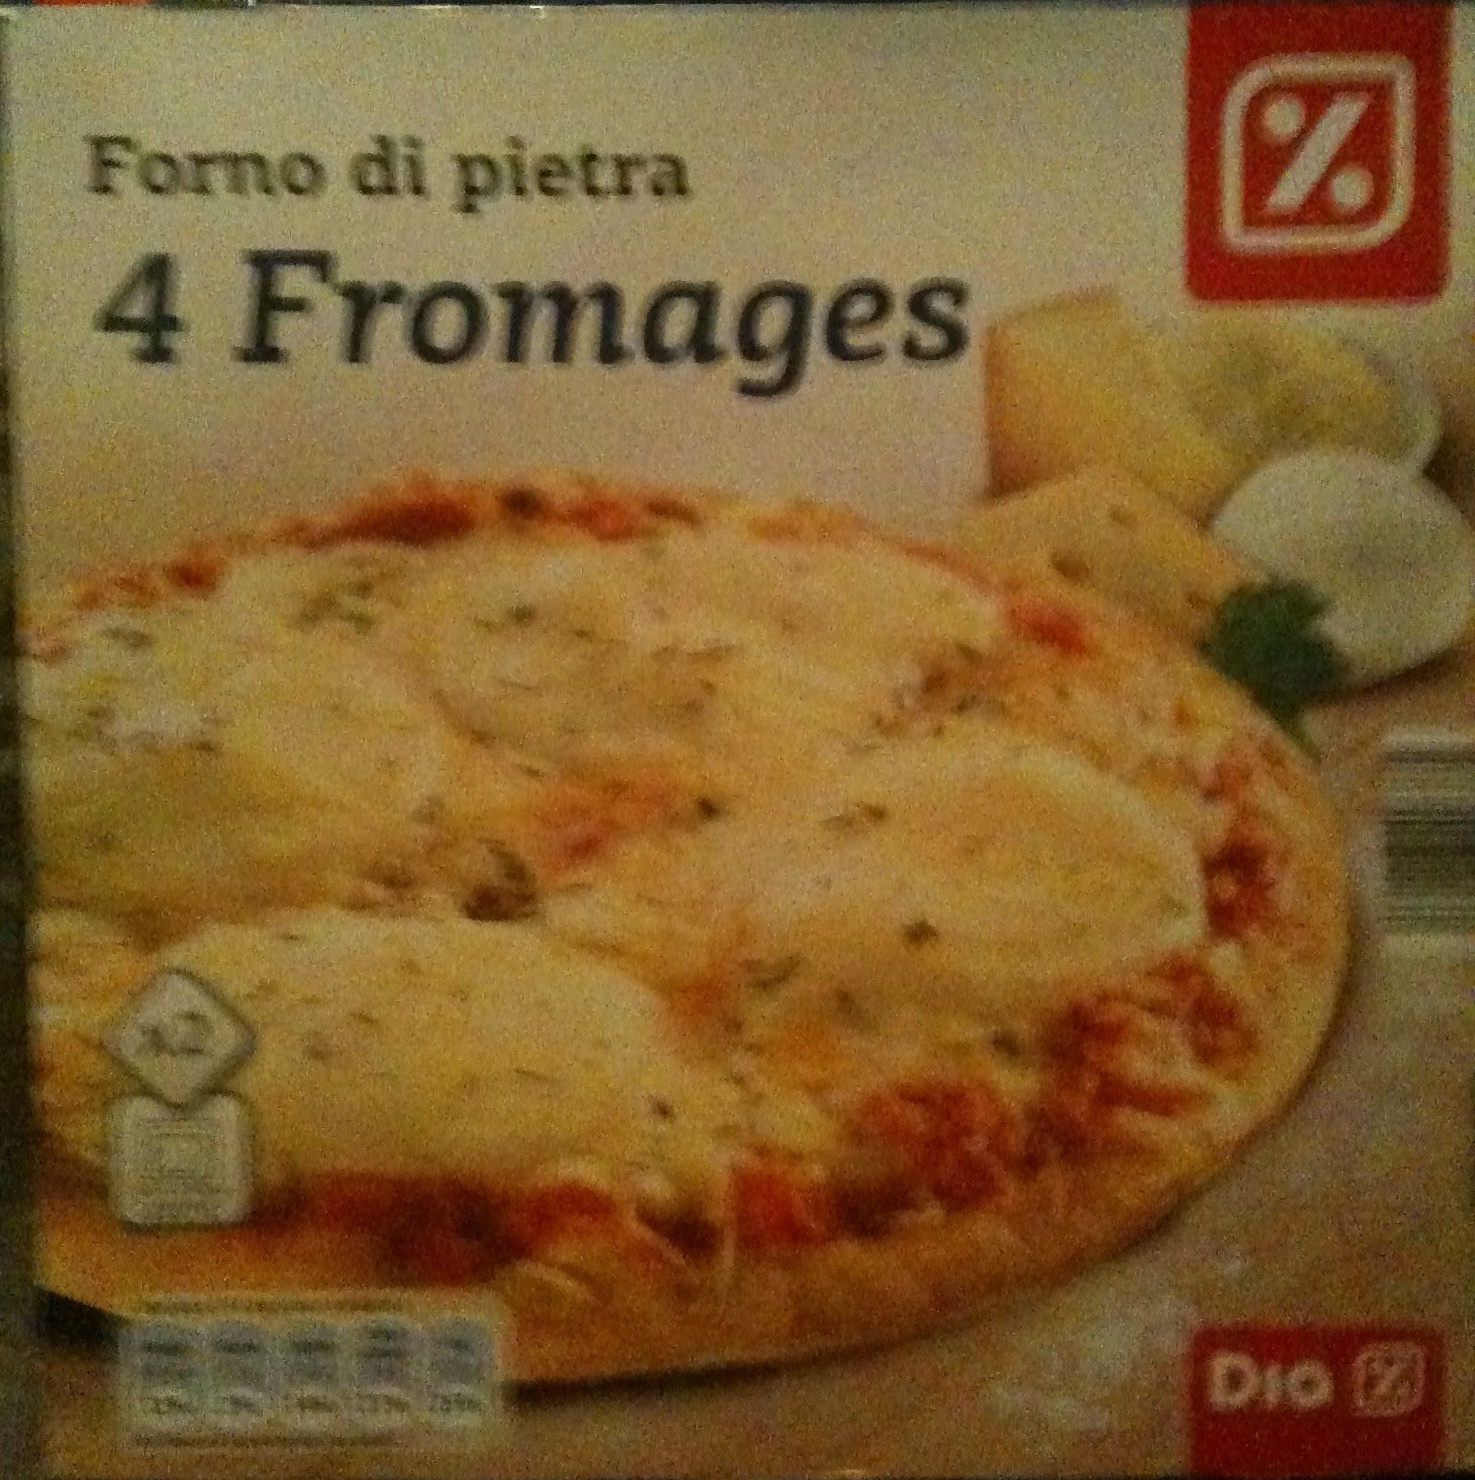 Forno di pietra 4 Fromages x2 - Product - fr